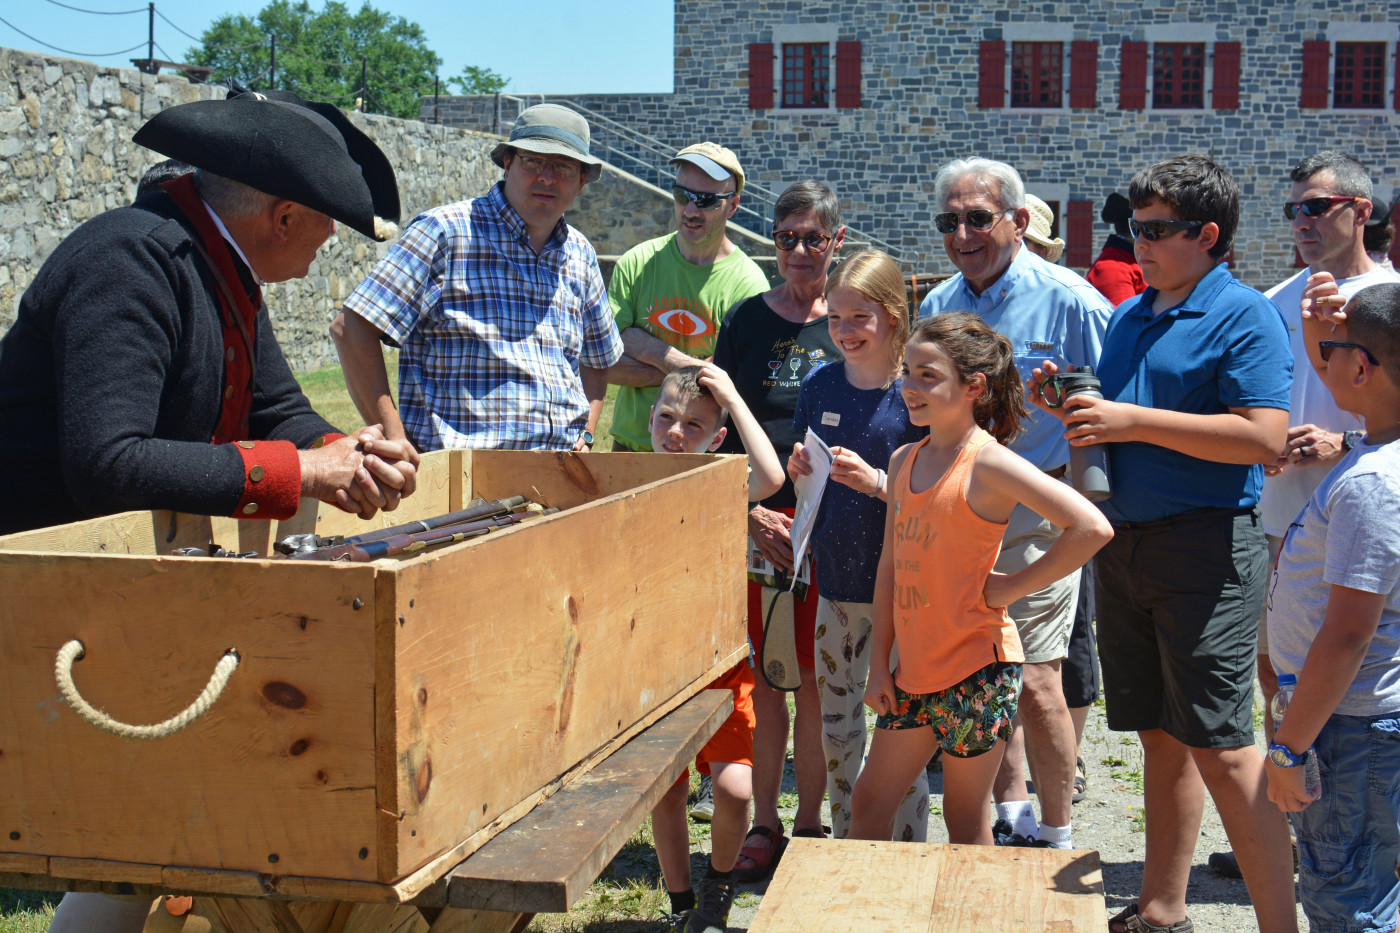 Independence Day Extended Weekend at Fort Ticonderoga